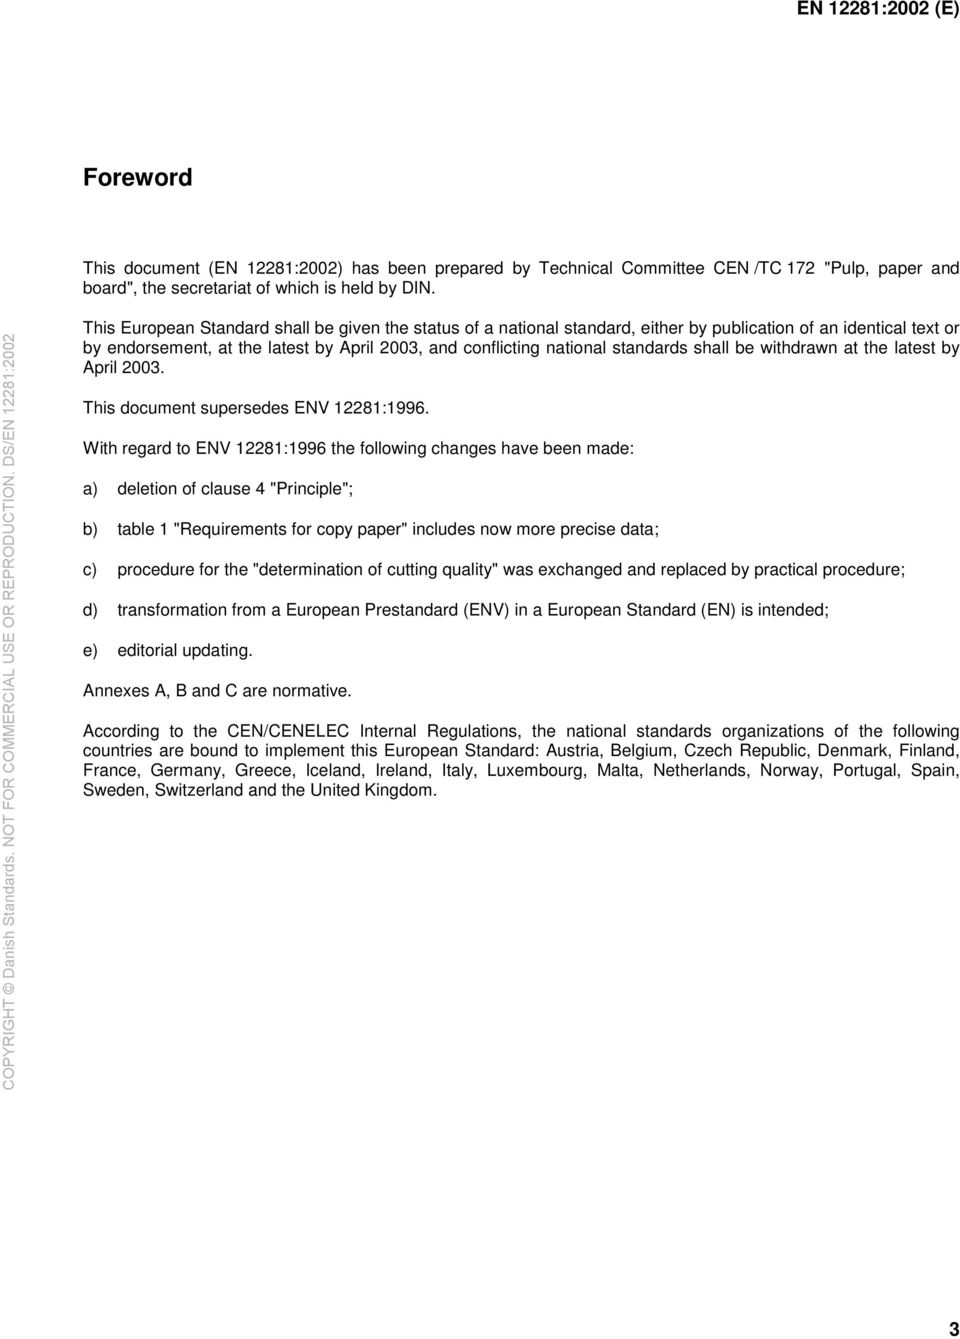 shall be withdrawn at the latest by April 2003. This document supersedes ENV 12281:1996.